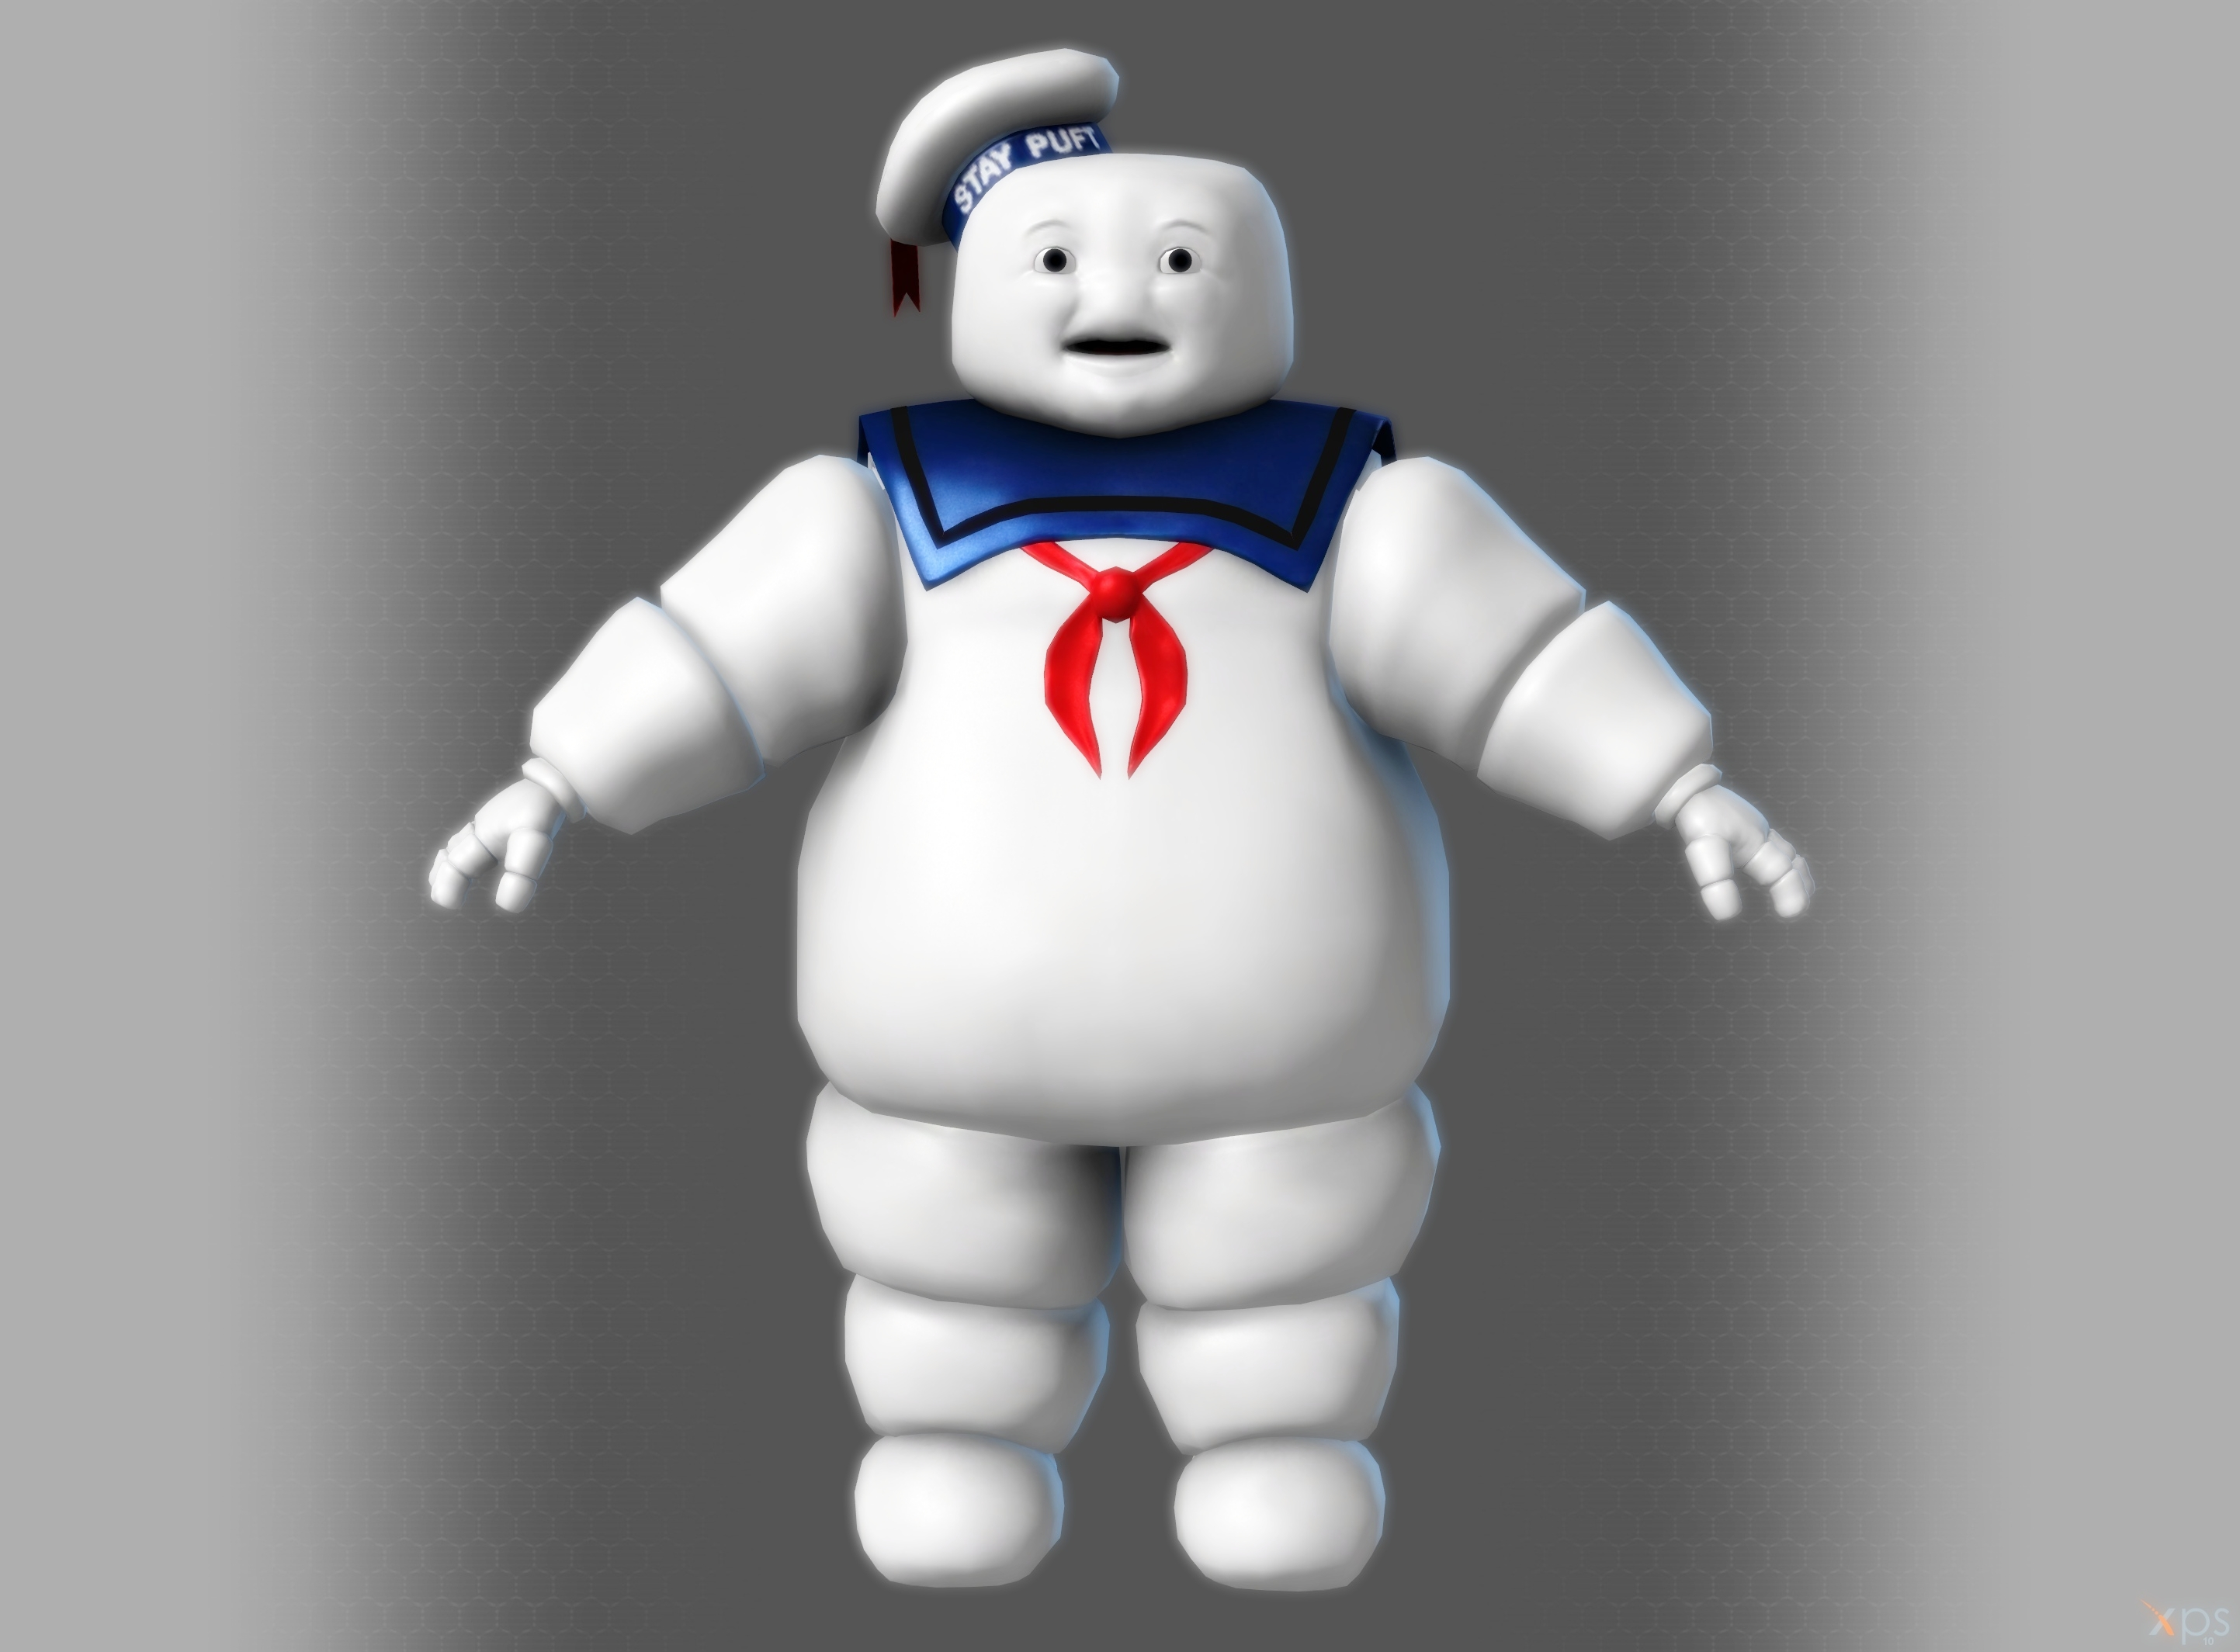 Stay Puft Marshmallow Man By Goreface13 On DeviantArt